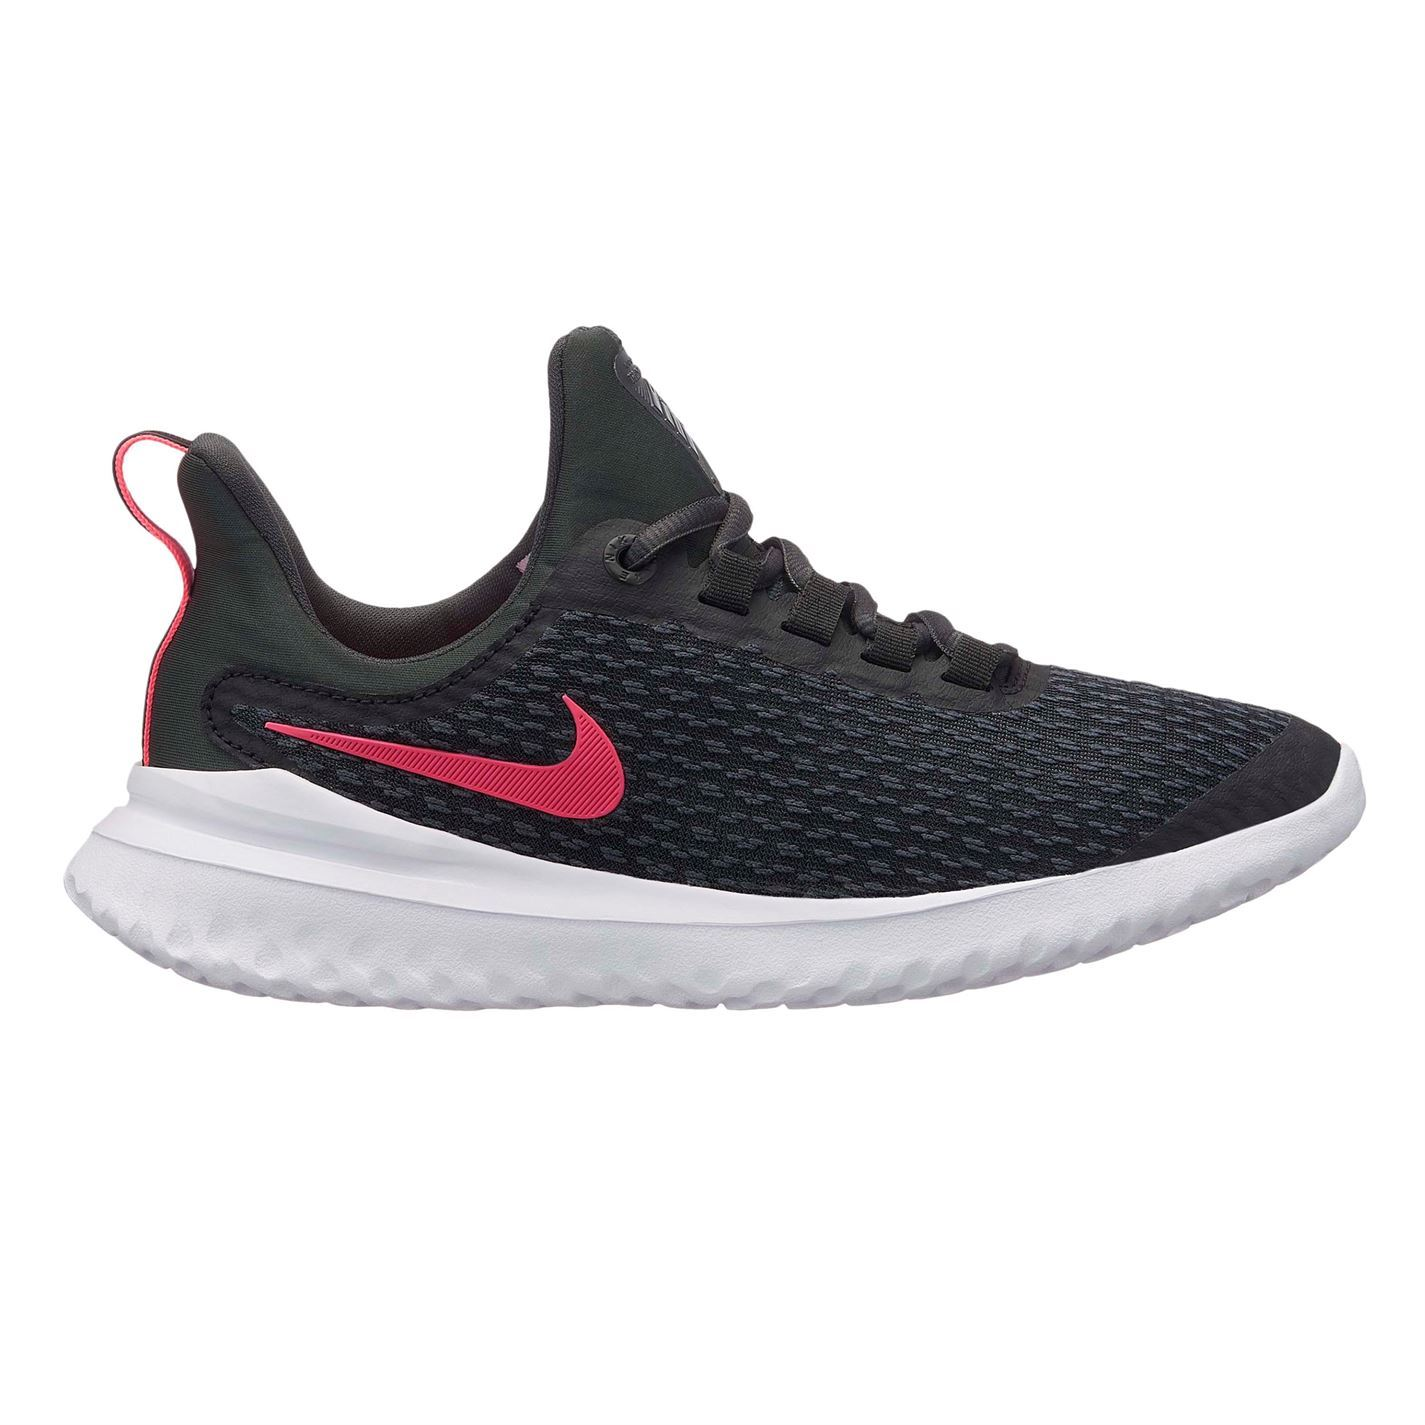 sale retailer fb927 d493d Details about Nike Renew Rival Trainers Junior Girls Black/Pink Shoes  Footwear